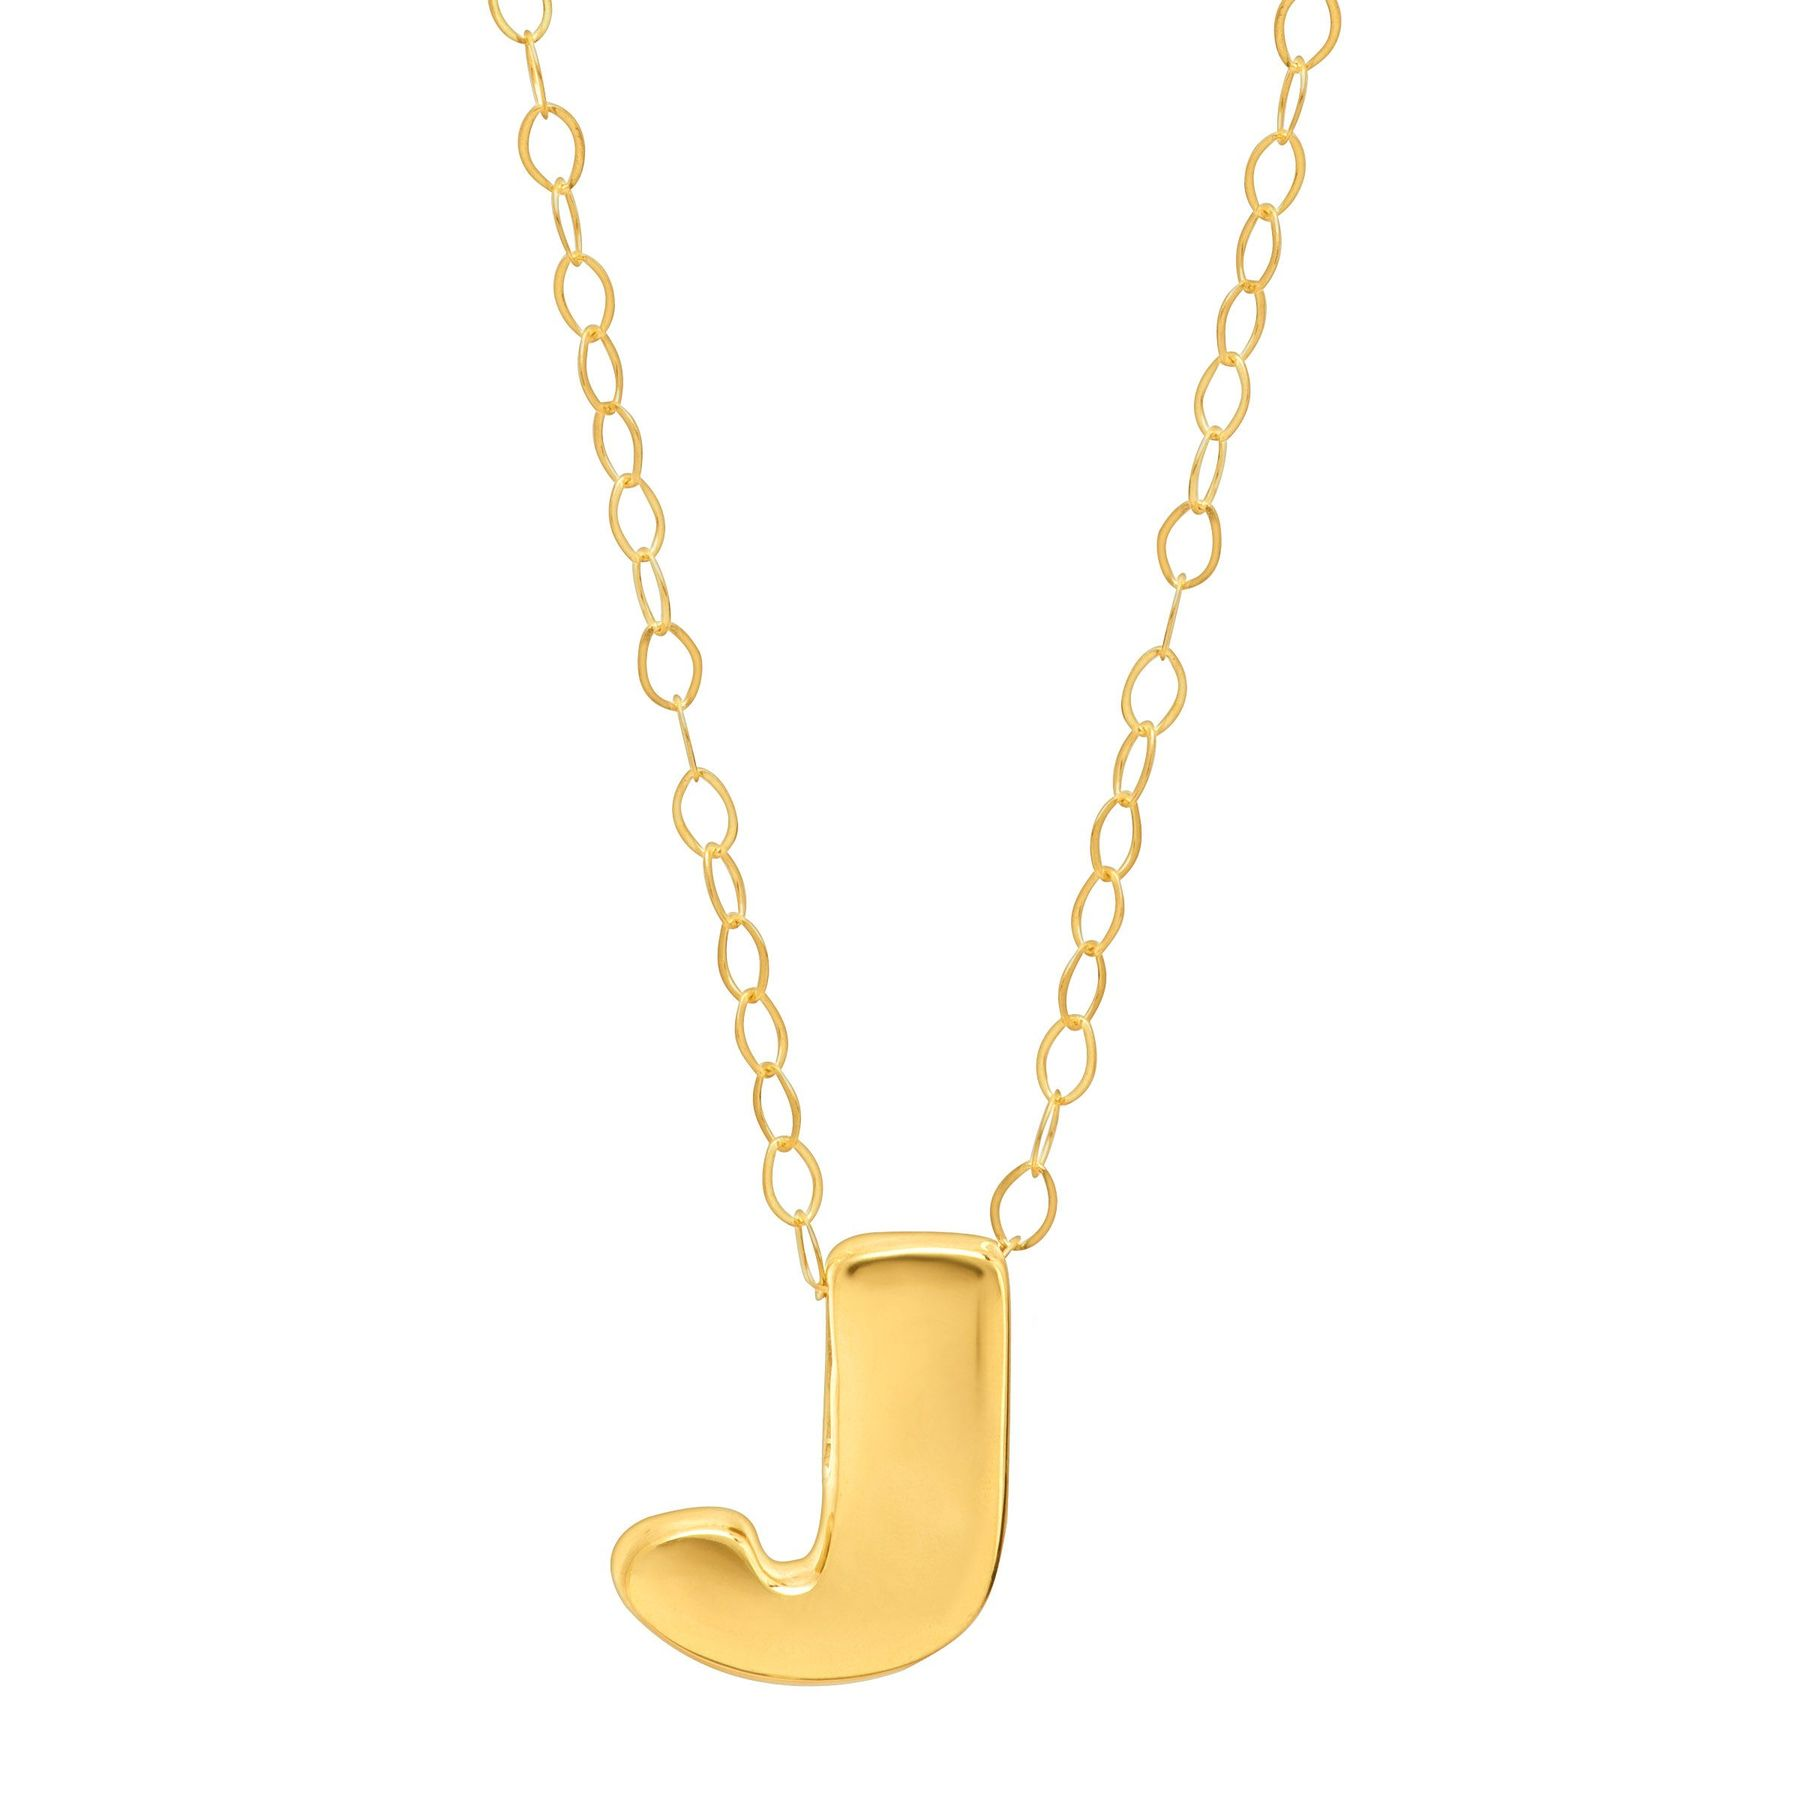 Eternity gold teeny tiny j initial pendant in 10k gold teeny teeny tiny j initial pendant aloadofball Image collections